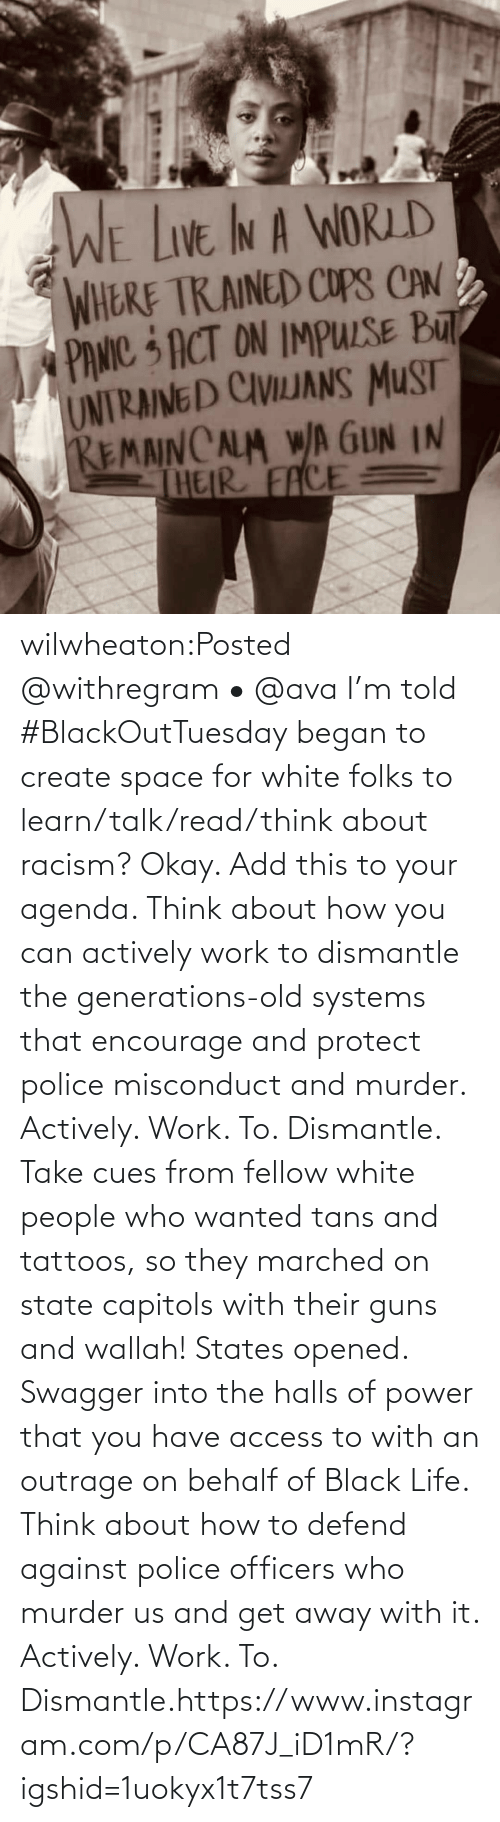 With: wilwheaton:Posted @withregram • @ava I'm told #BlackOutTuesday began to create space for white folks to learn/talk/read/think about racism? Okay. Add this to your agenda. Think about how you can actively work to dismantle the generations-old systems that encourage and protect police misconduct and murder. Actively. Work. To. Dismantle. Take cues from fellow white people who wanted tans and tattoos, so they marched on state capitols with their guns and wallah! States opened. Swagger into the halls of power that you have access to with an outrage on behalf of Black Life. Think about how to defend against police officers who murder us and get away with it. Actively. Work. To. Dismantle.https://www.instagram.com/p/CA87J_iD1mR/?igshid=1uokyx1t7tss7